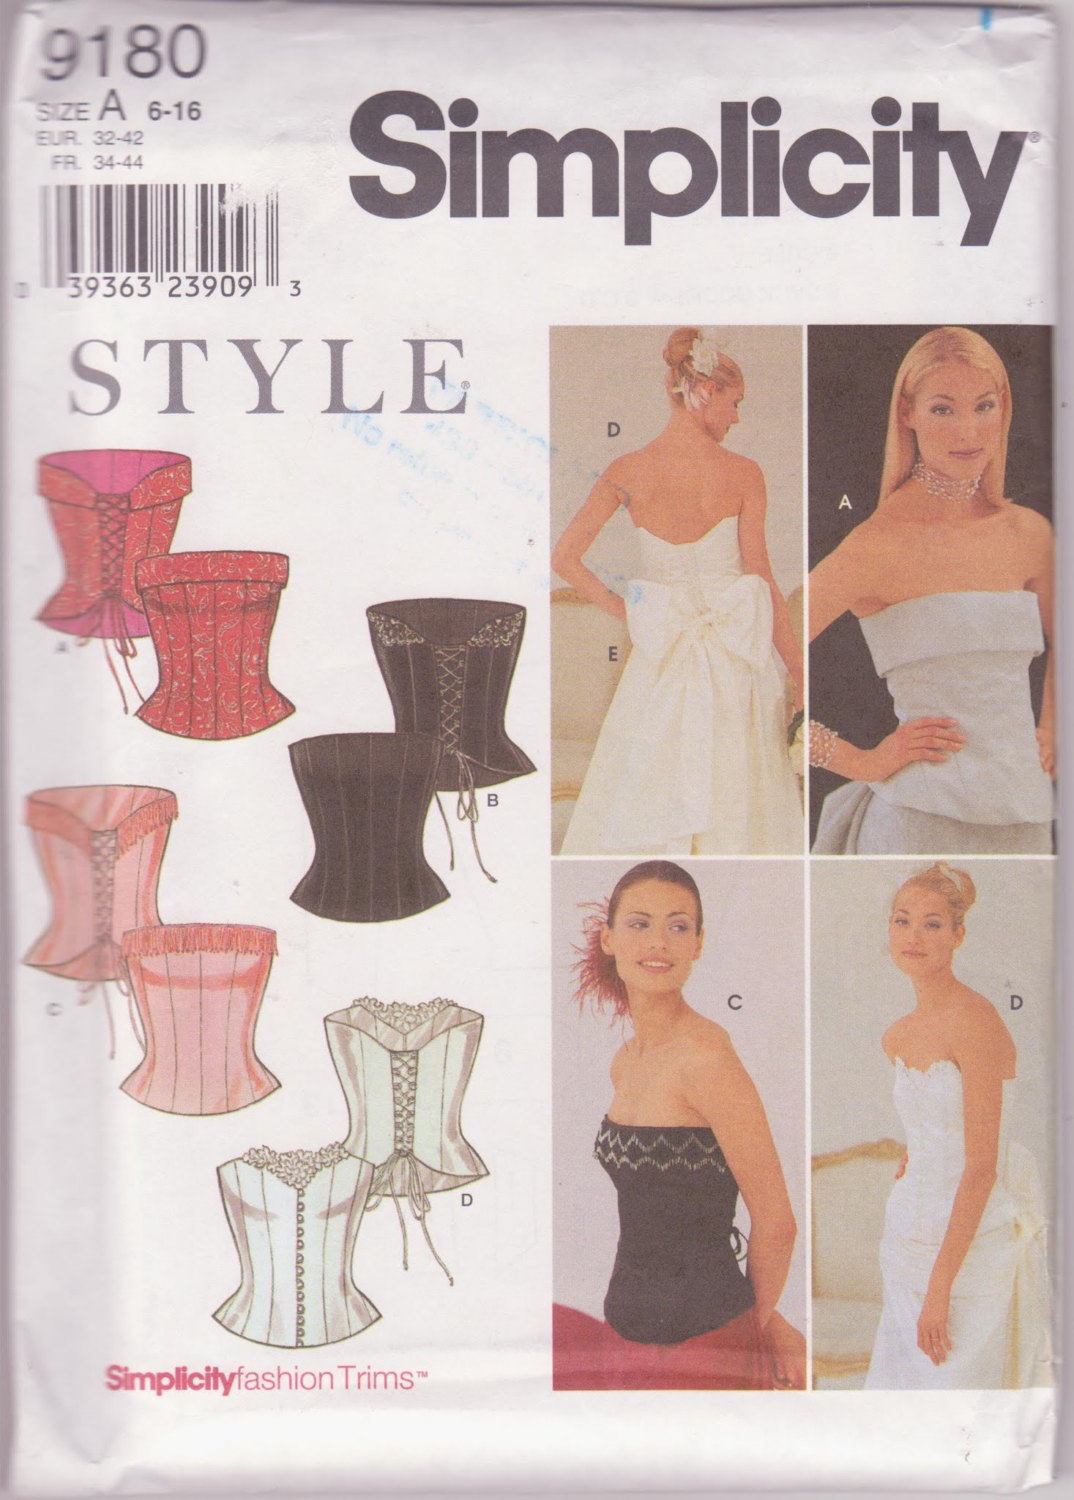 Lingerie Busteir, Sashes Gathered Ties, Pattern Simplicity 9180 4 Fitted Styles,